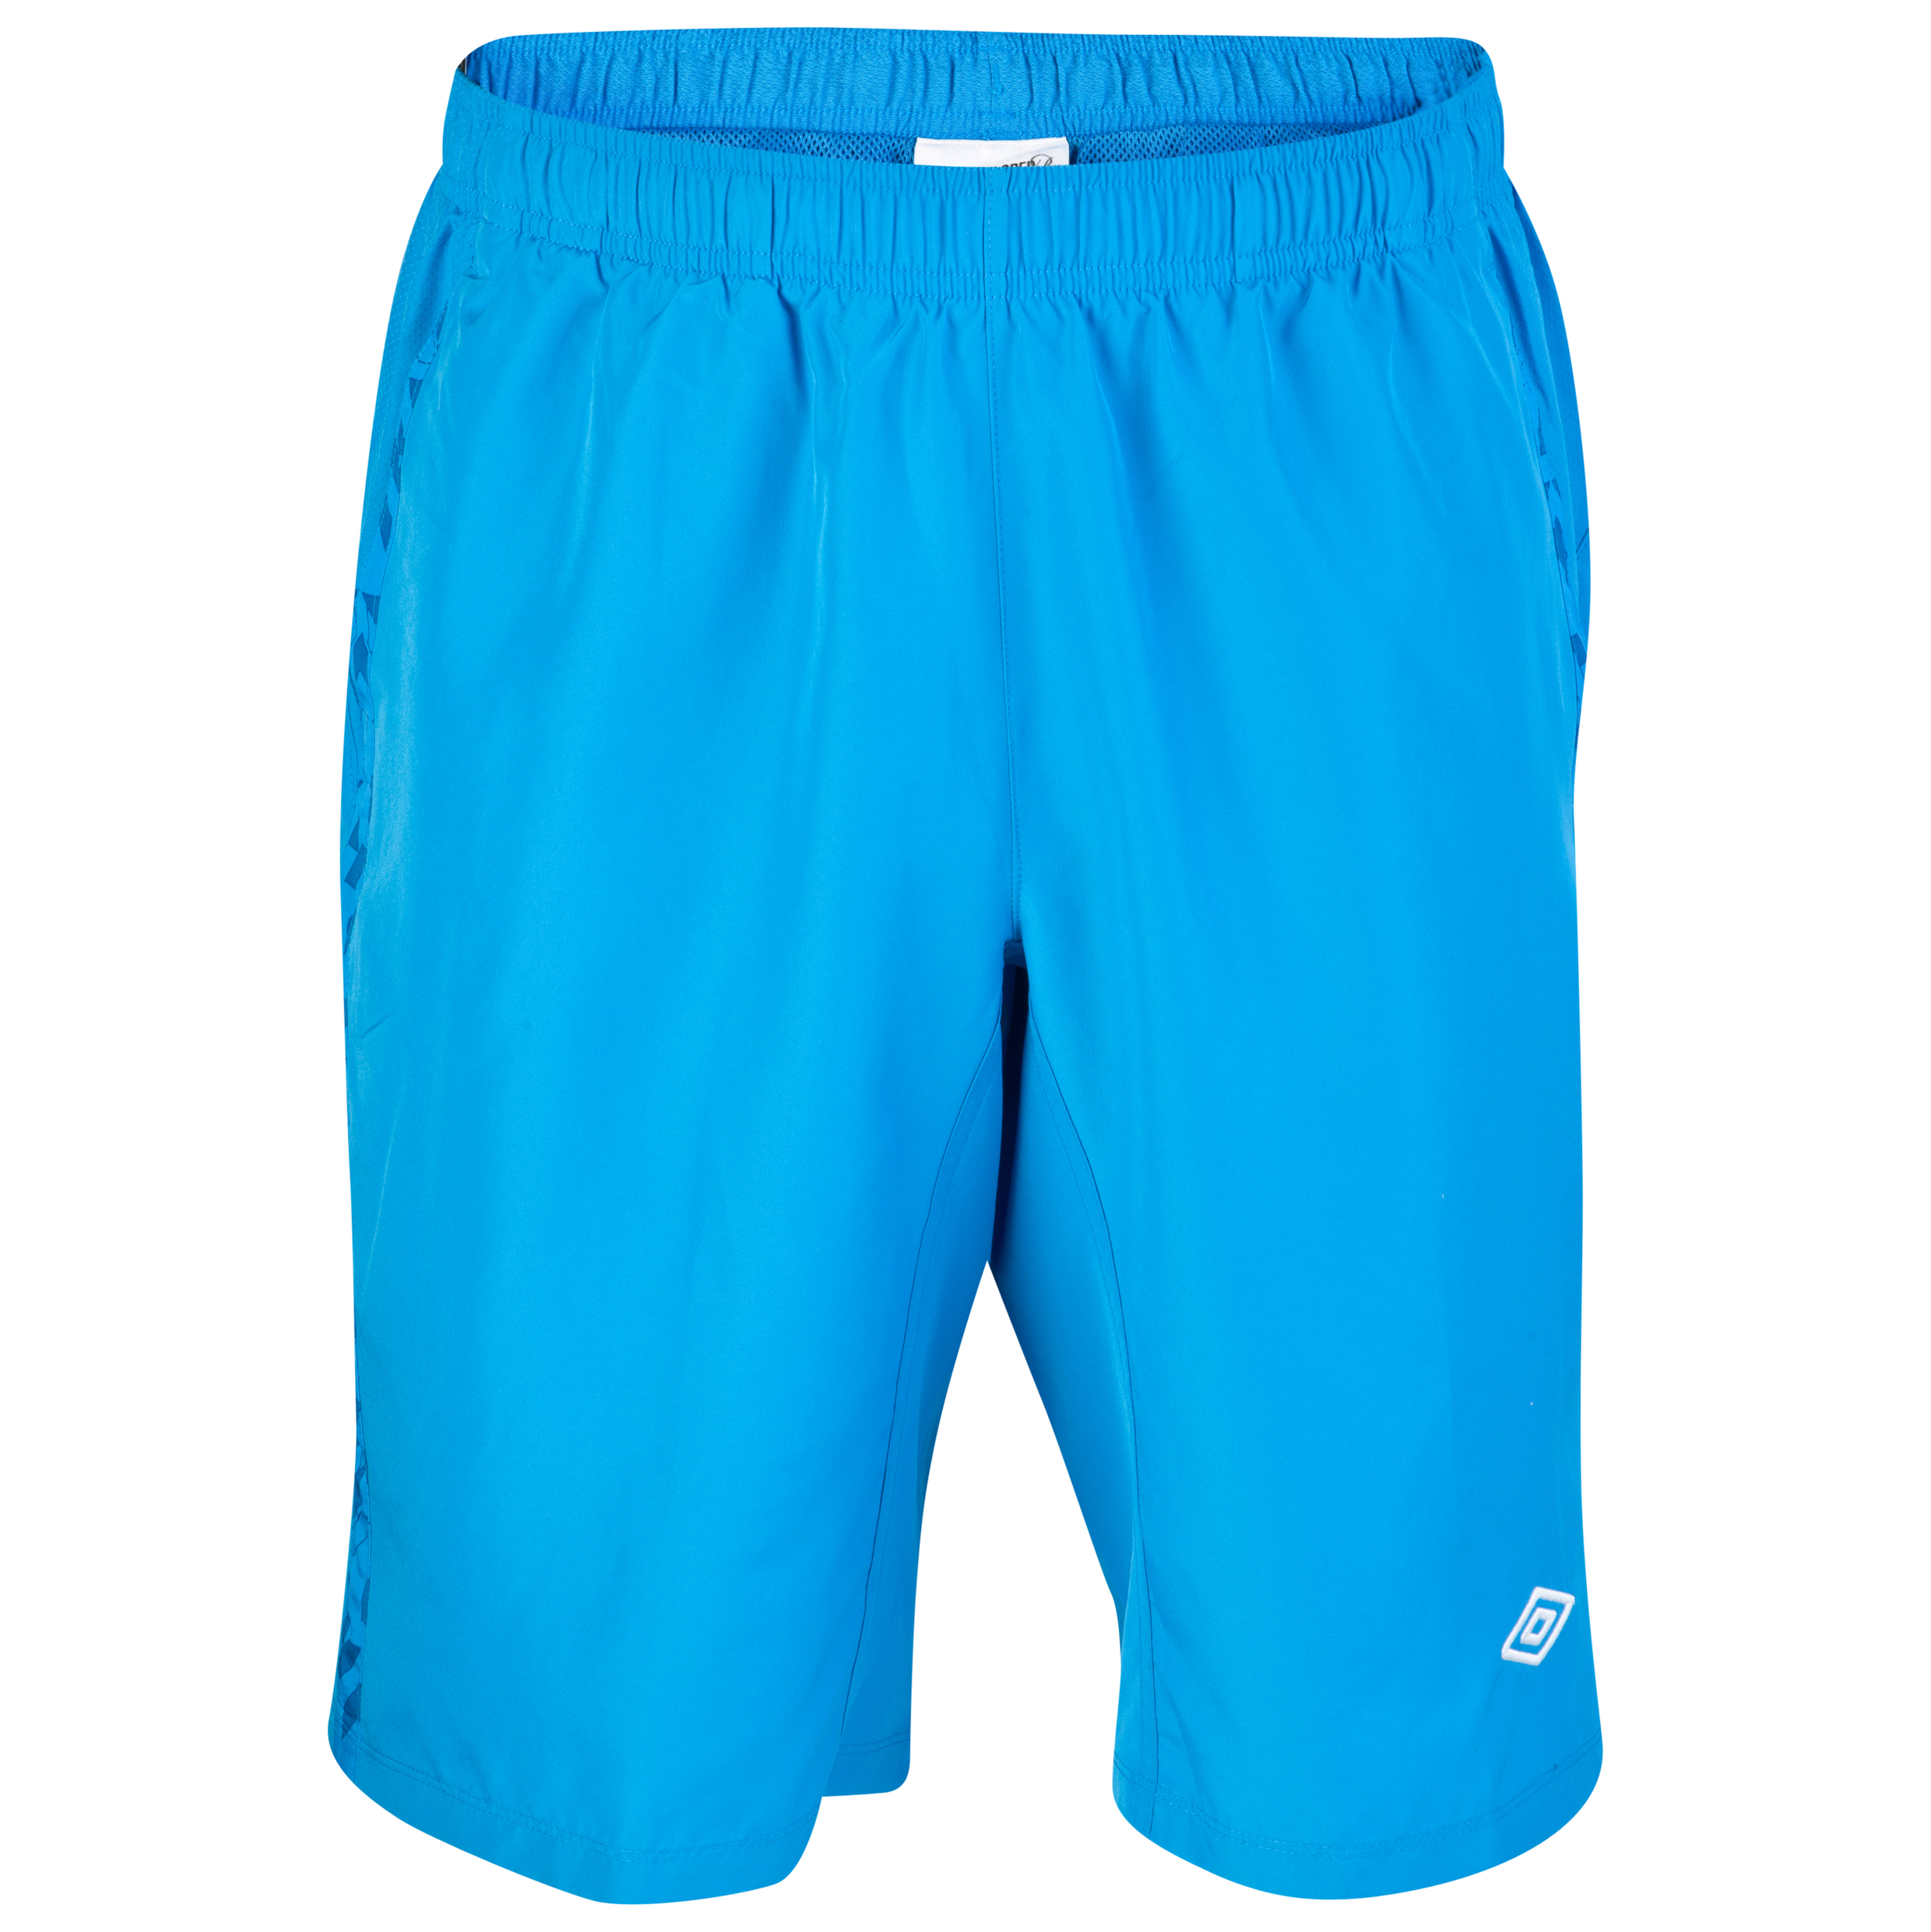 Umbro Geometra Long Woven Short - Brilliant Blue